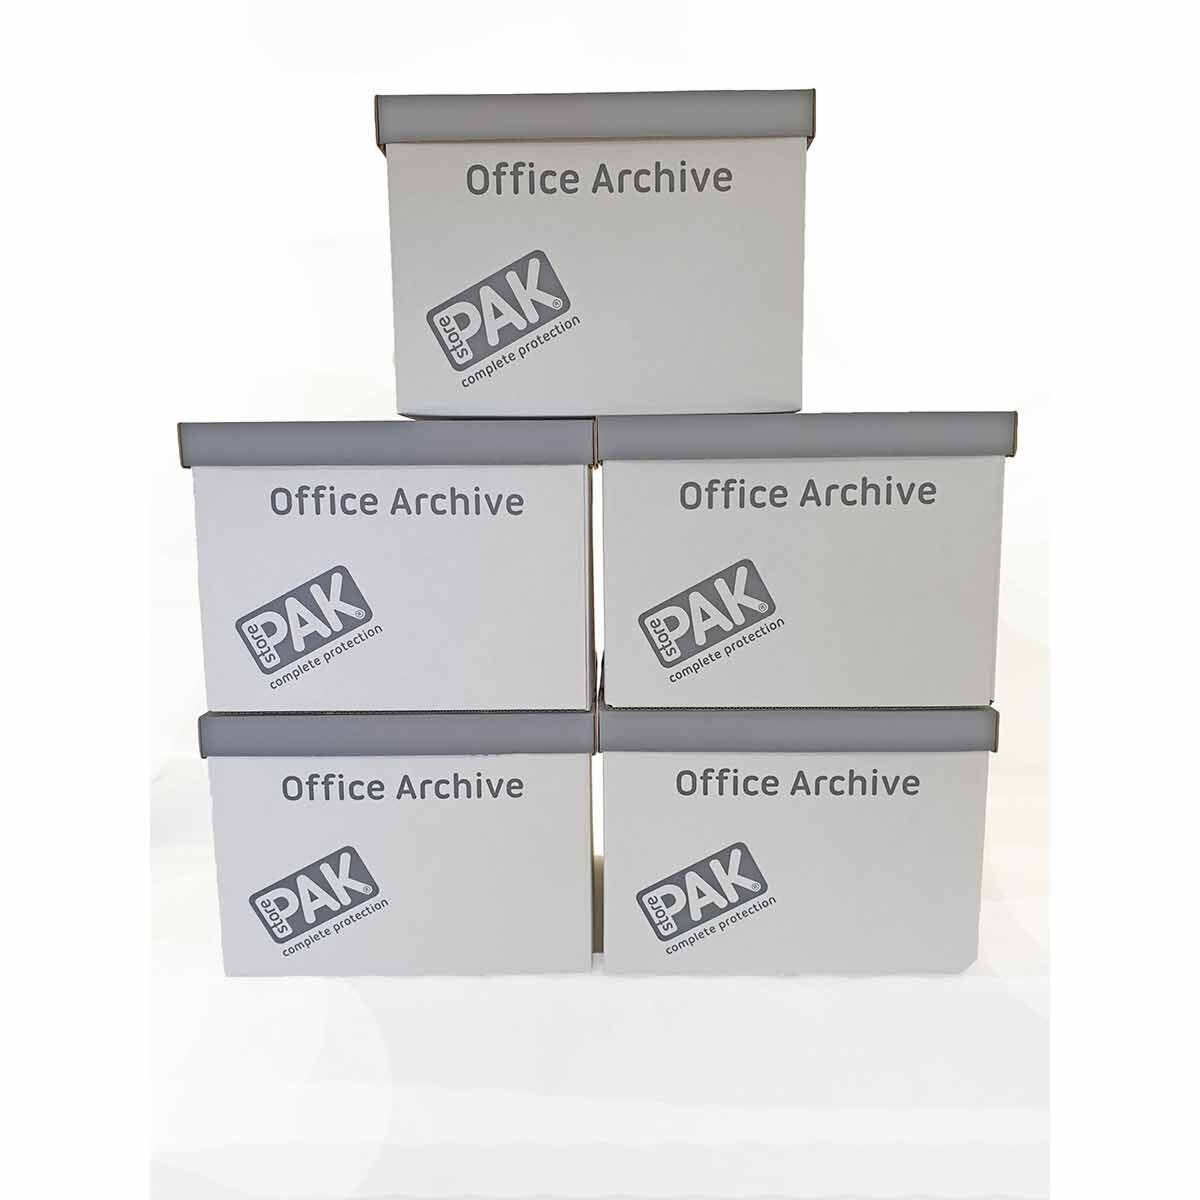 StorePAK Office Archive Box and Lid Pack of 5